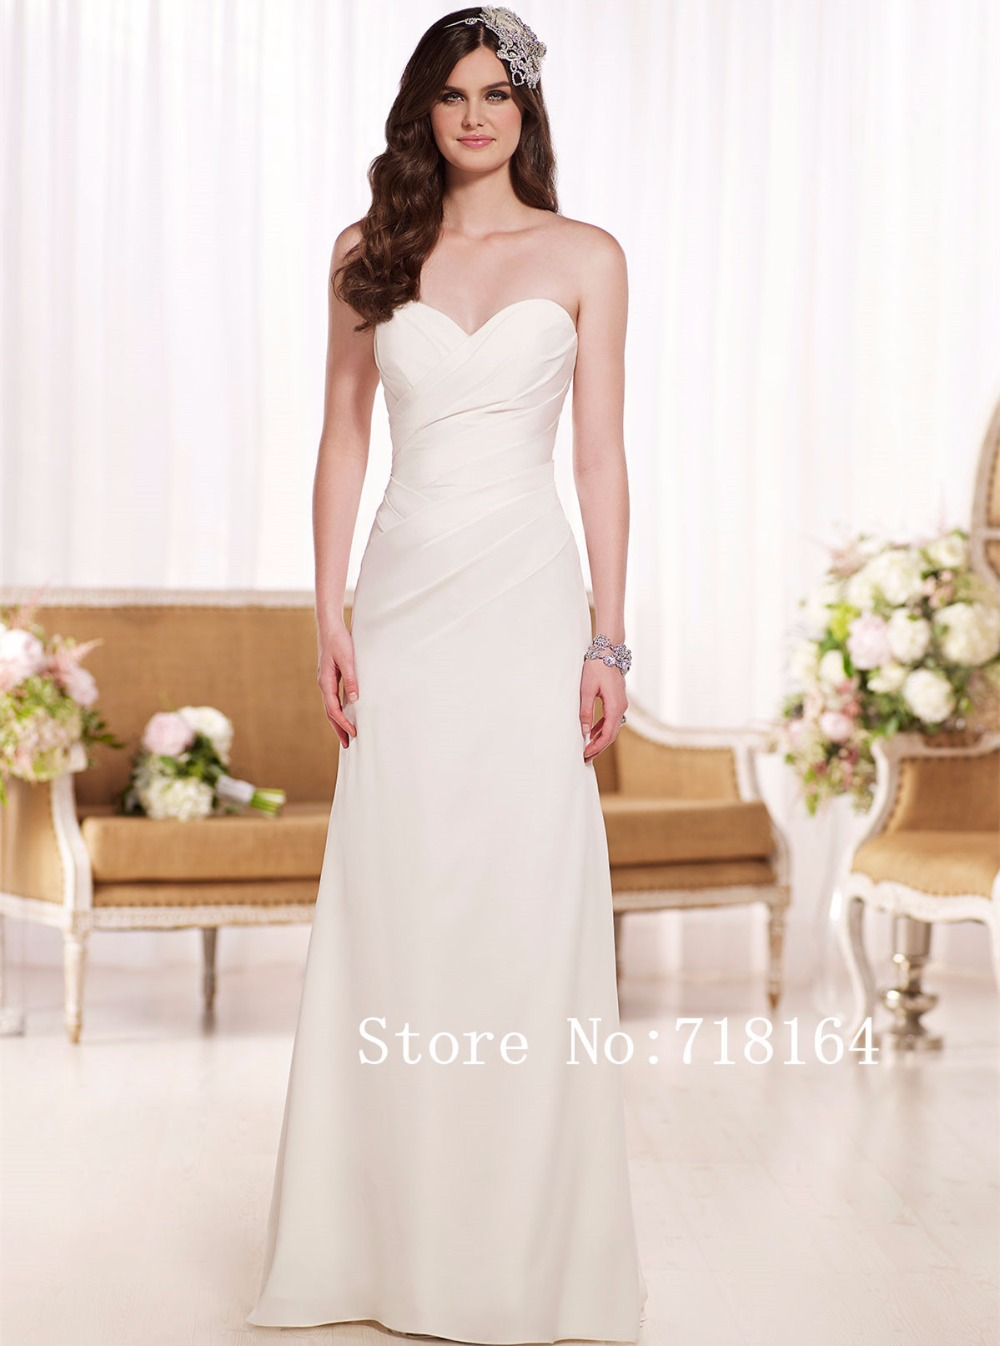 Boda barato viste canad cuadros for Cheap wedding dresses made in china